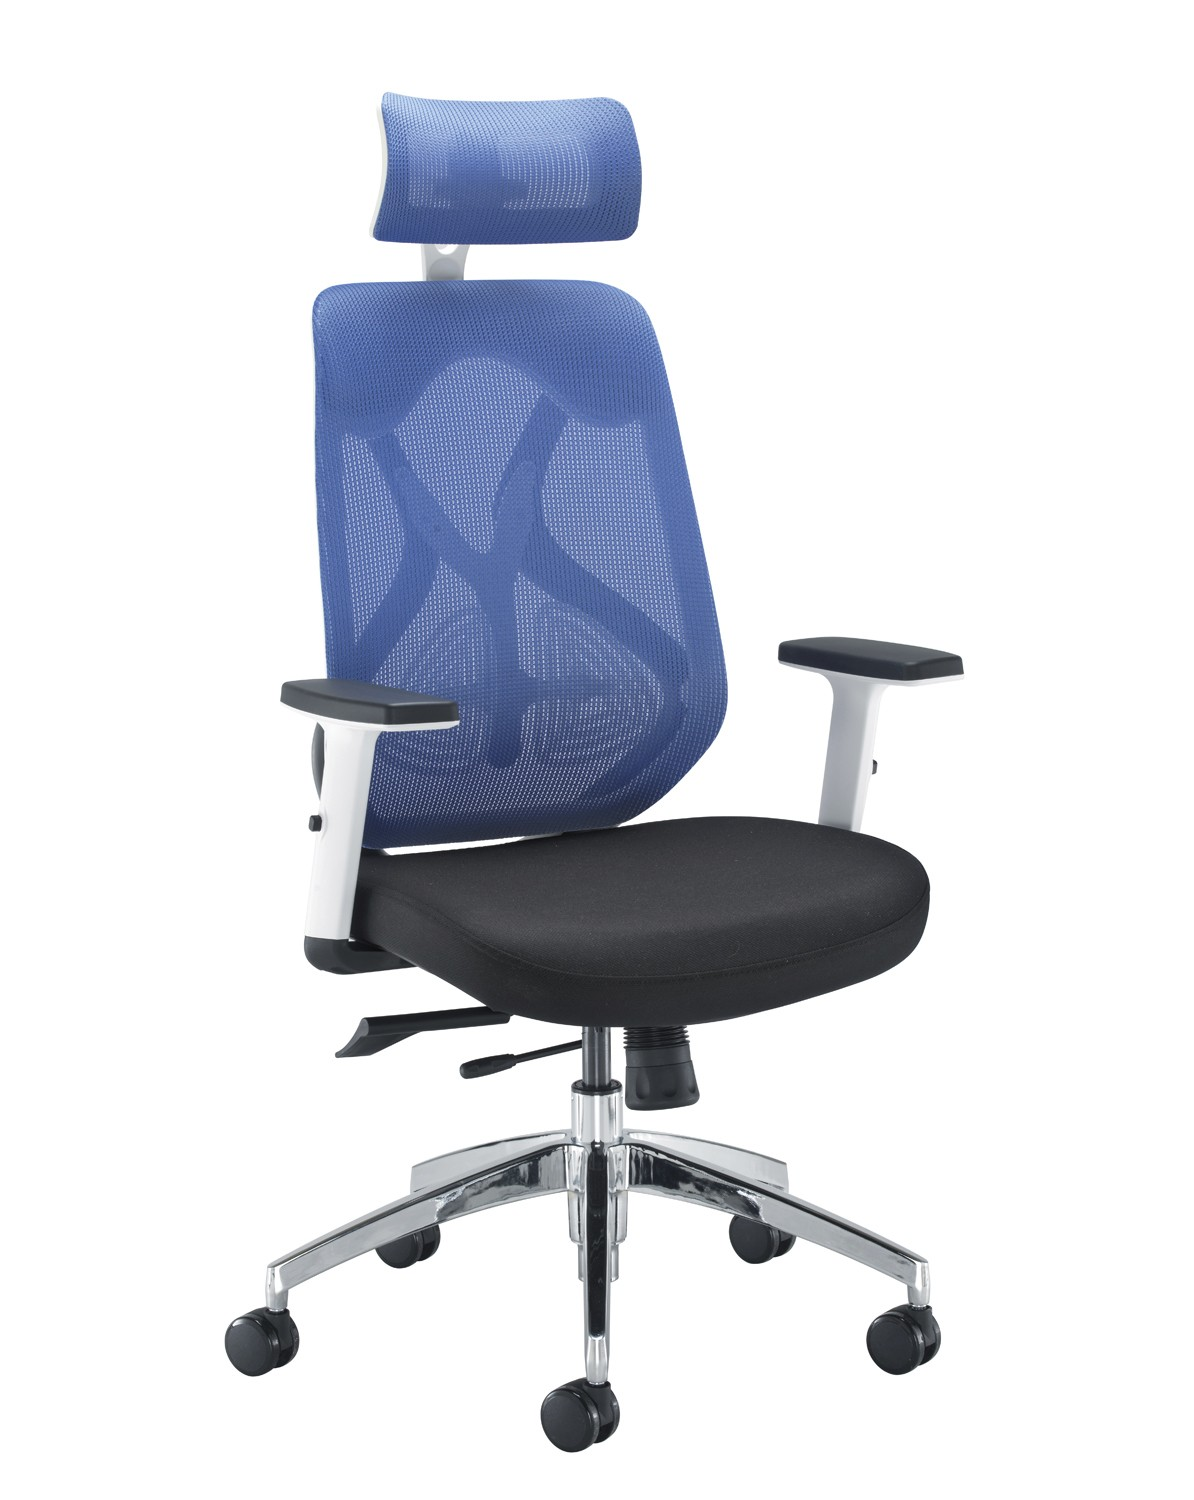 Maldini High Back Chair - Blue